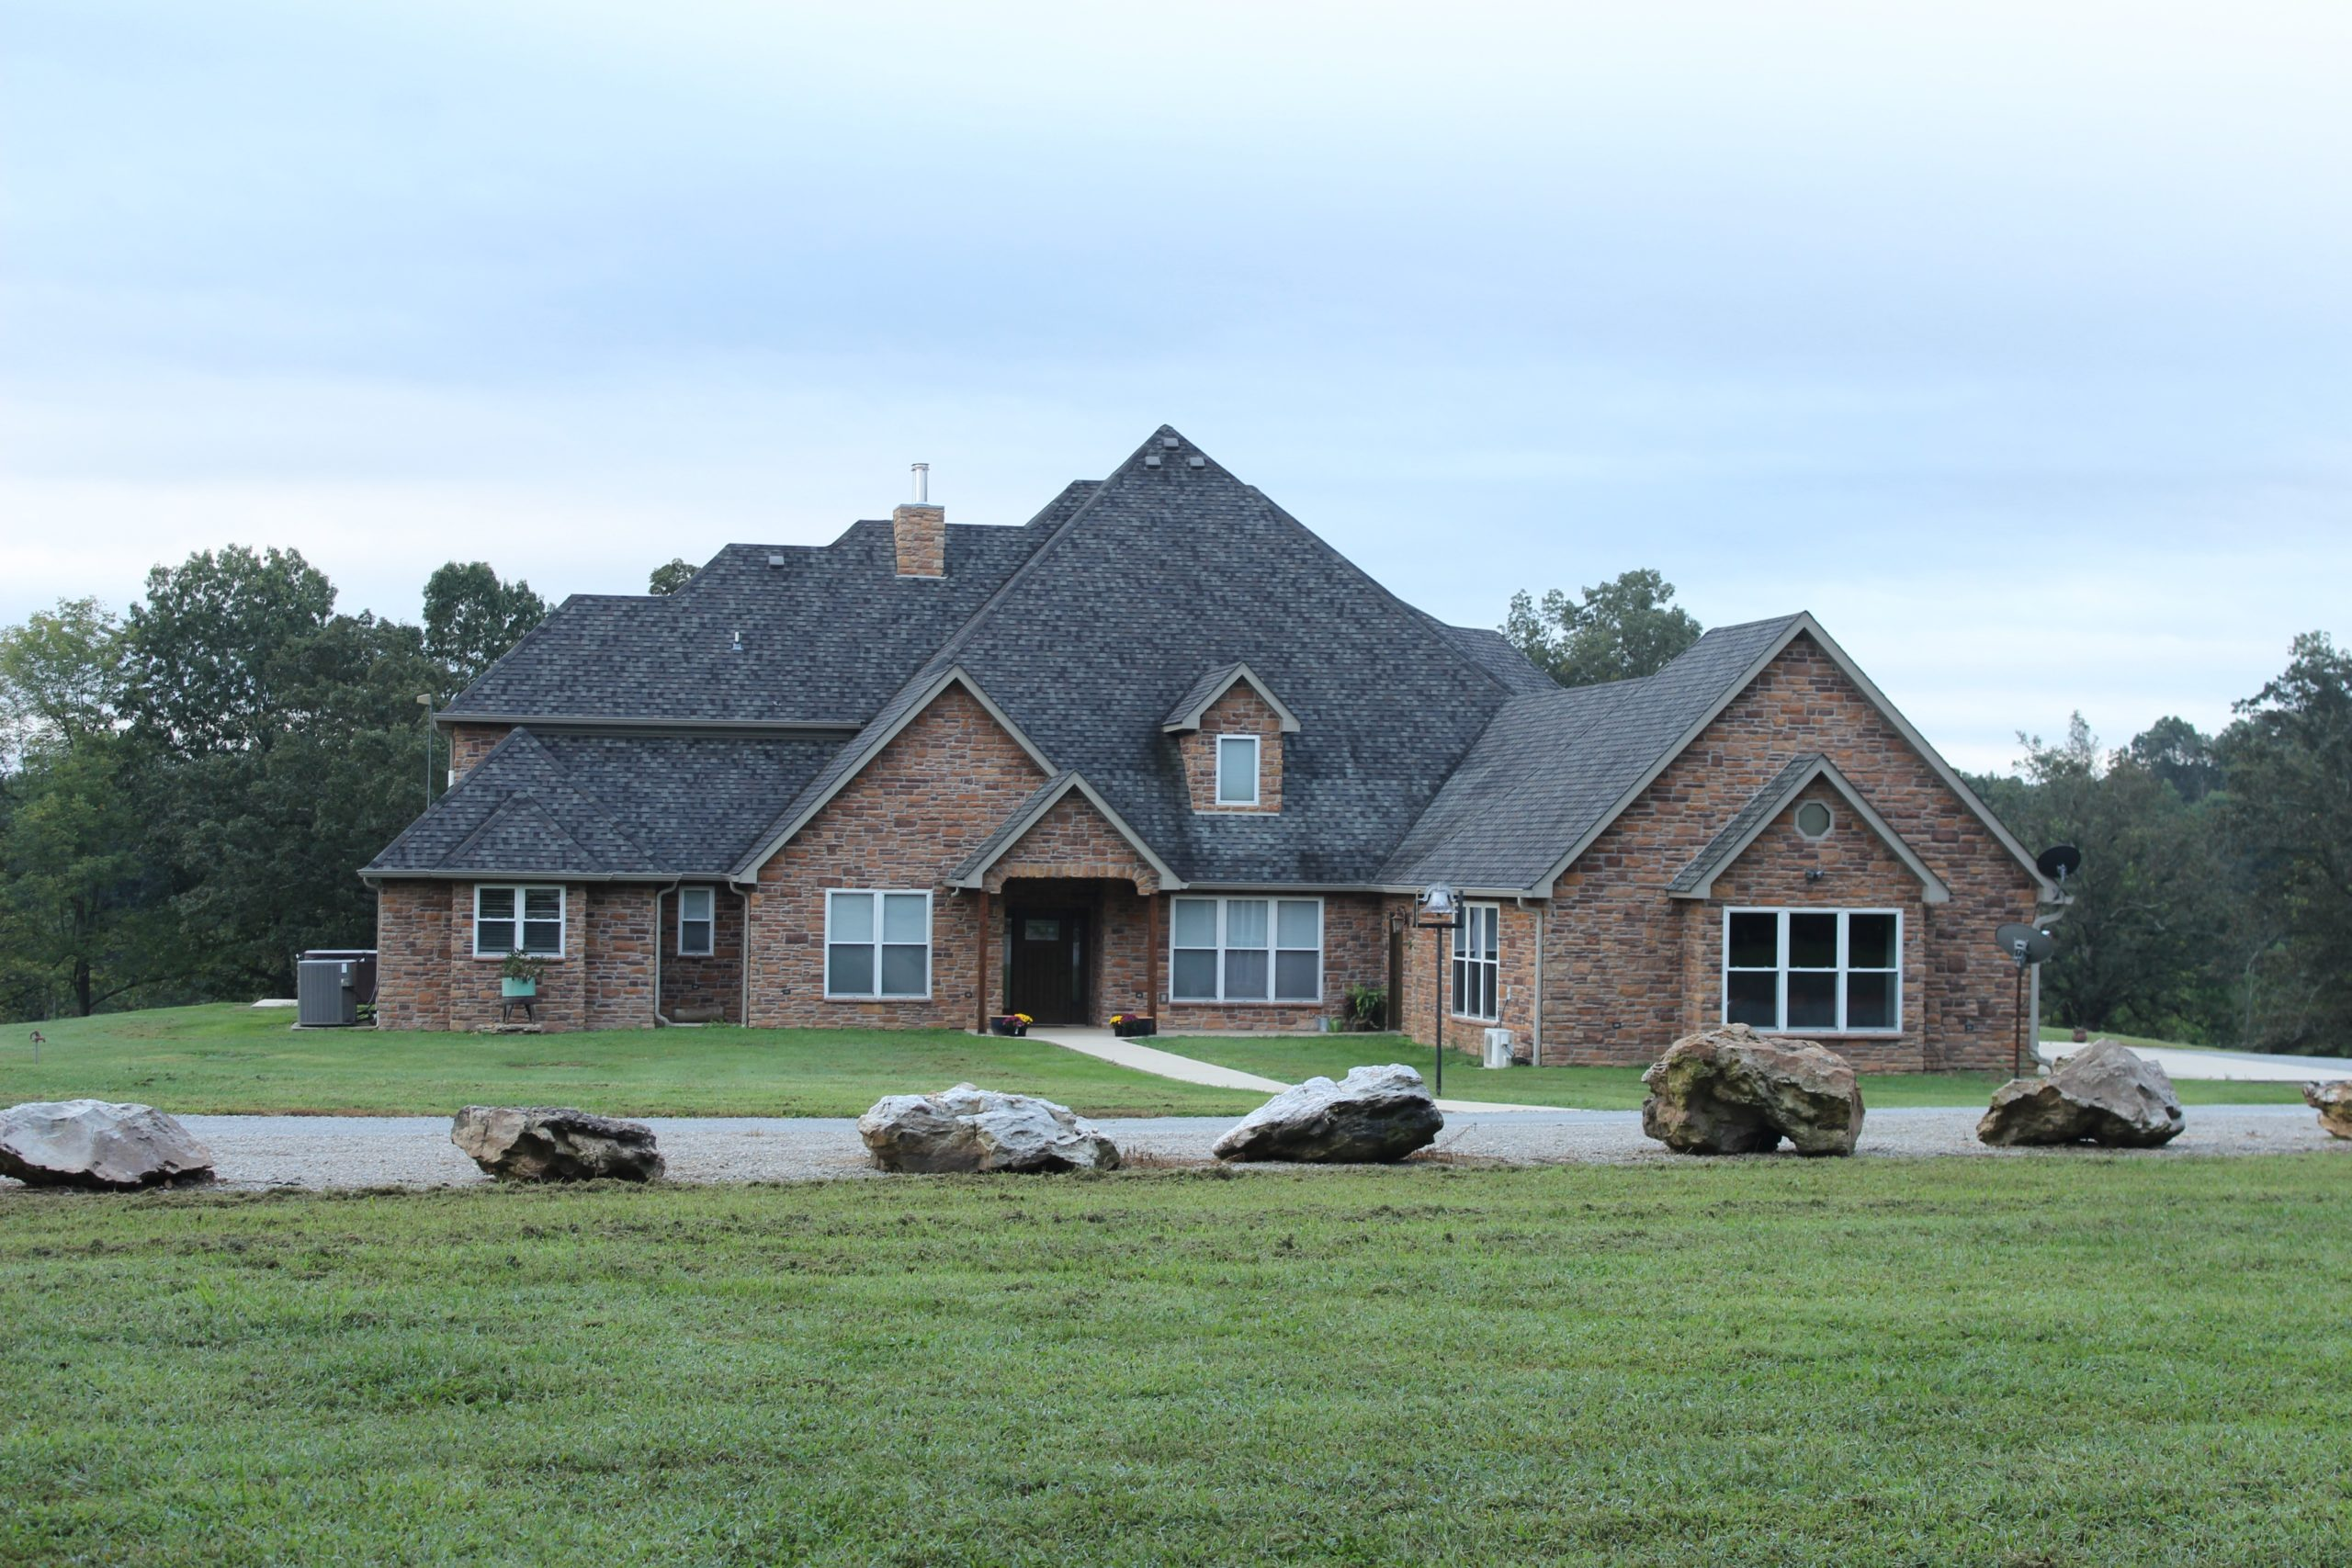 Executive-Style Stone Home with Acreage for sale in the Missouri Ozarks